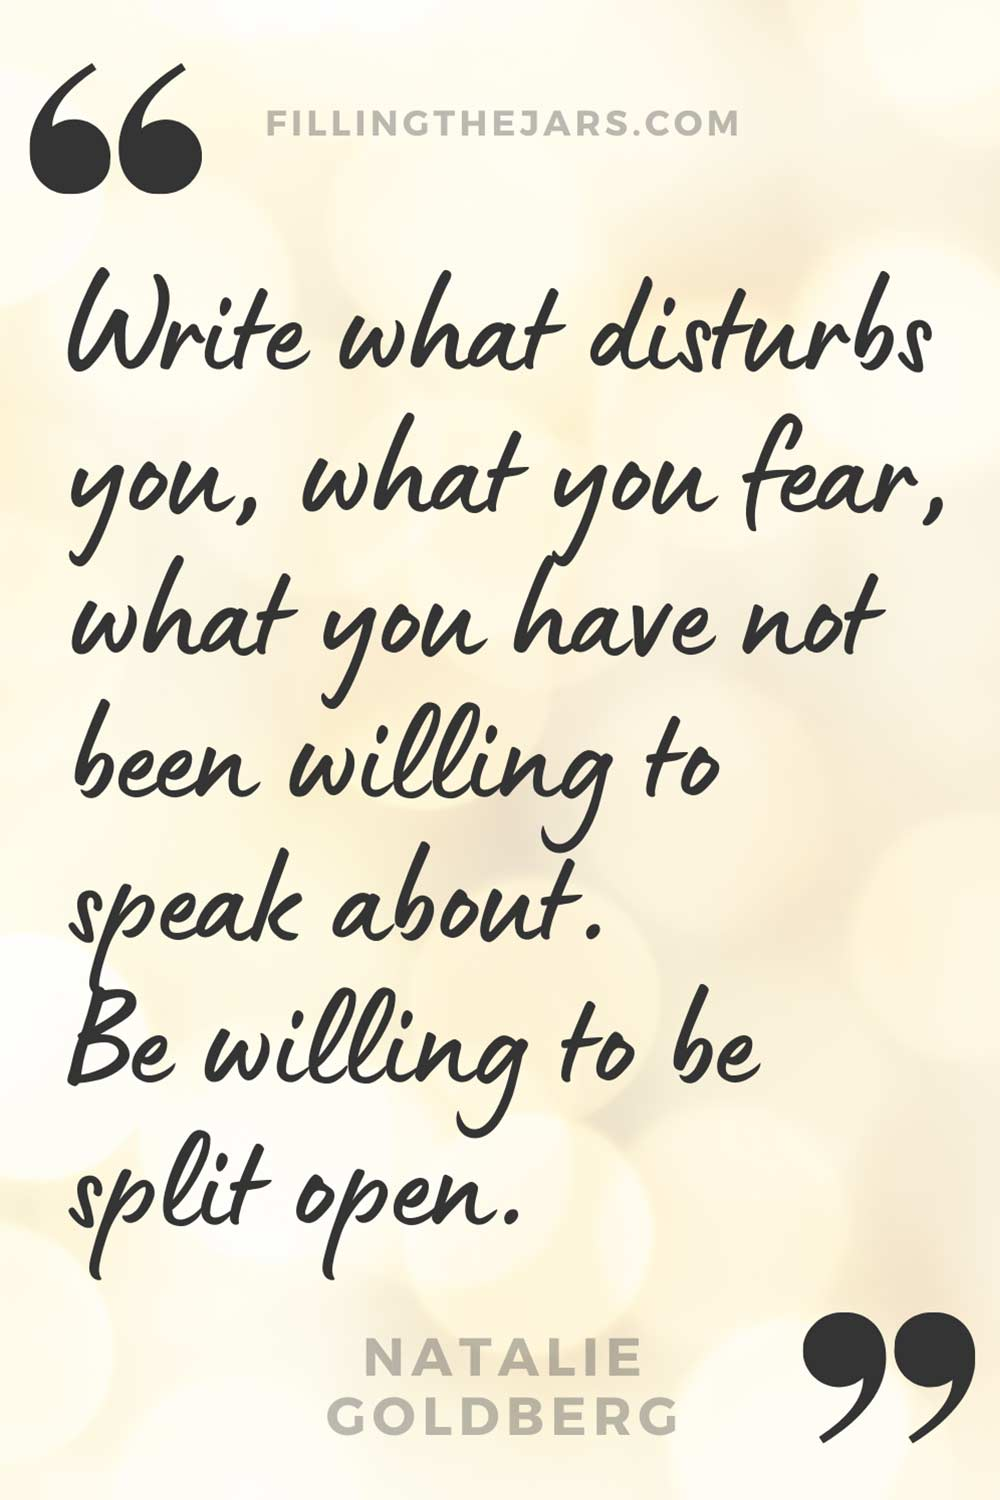 Natalie Goldberg quote 'Write what disturbs you, what you fear, what you have not been willing to speak about. Be willing to be split open.' on pale peach bokeh background.